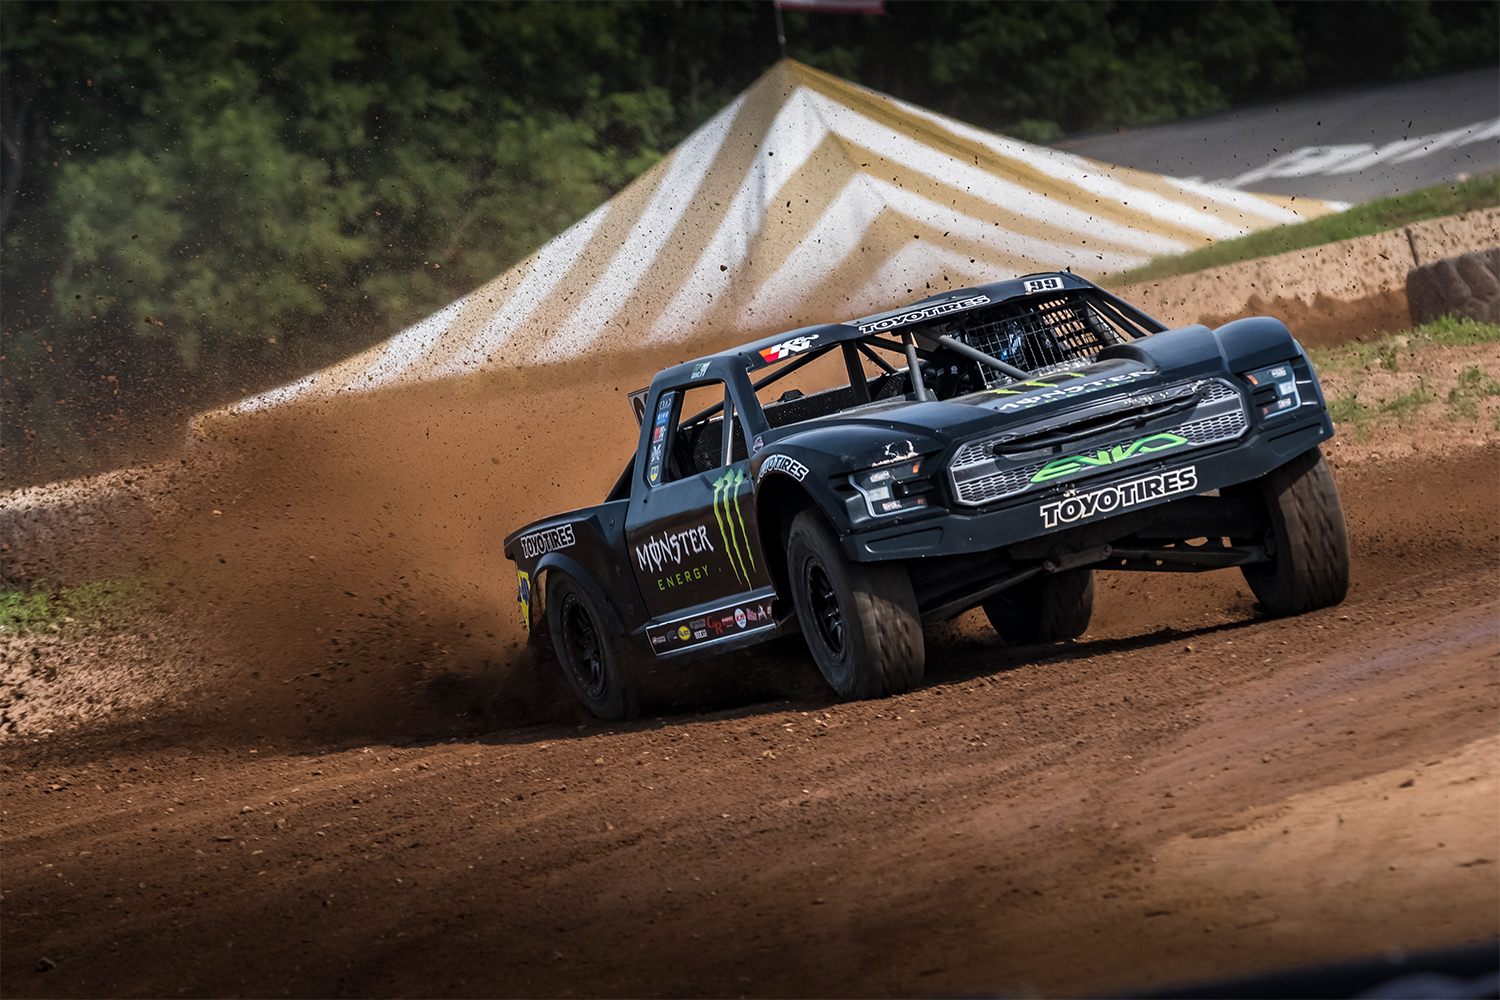 Images of Kyle Leduc and his #99 Monster Energy / Toyo Tires / WD-40 / Ford Raptor Pro 4 Truck are available at: https://media.toyotires.com/kyle-leduc-wins-third-cor-race-in-two-weeks